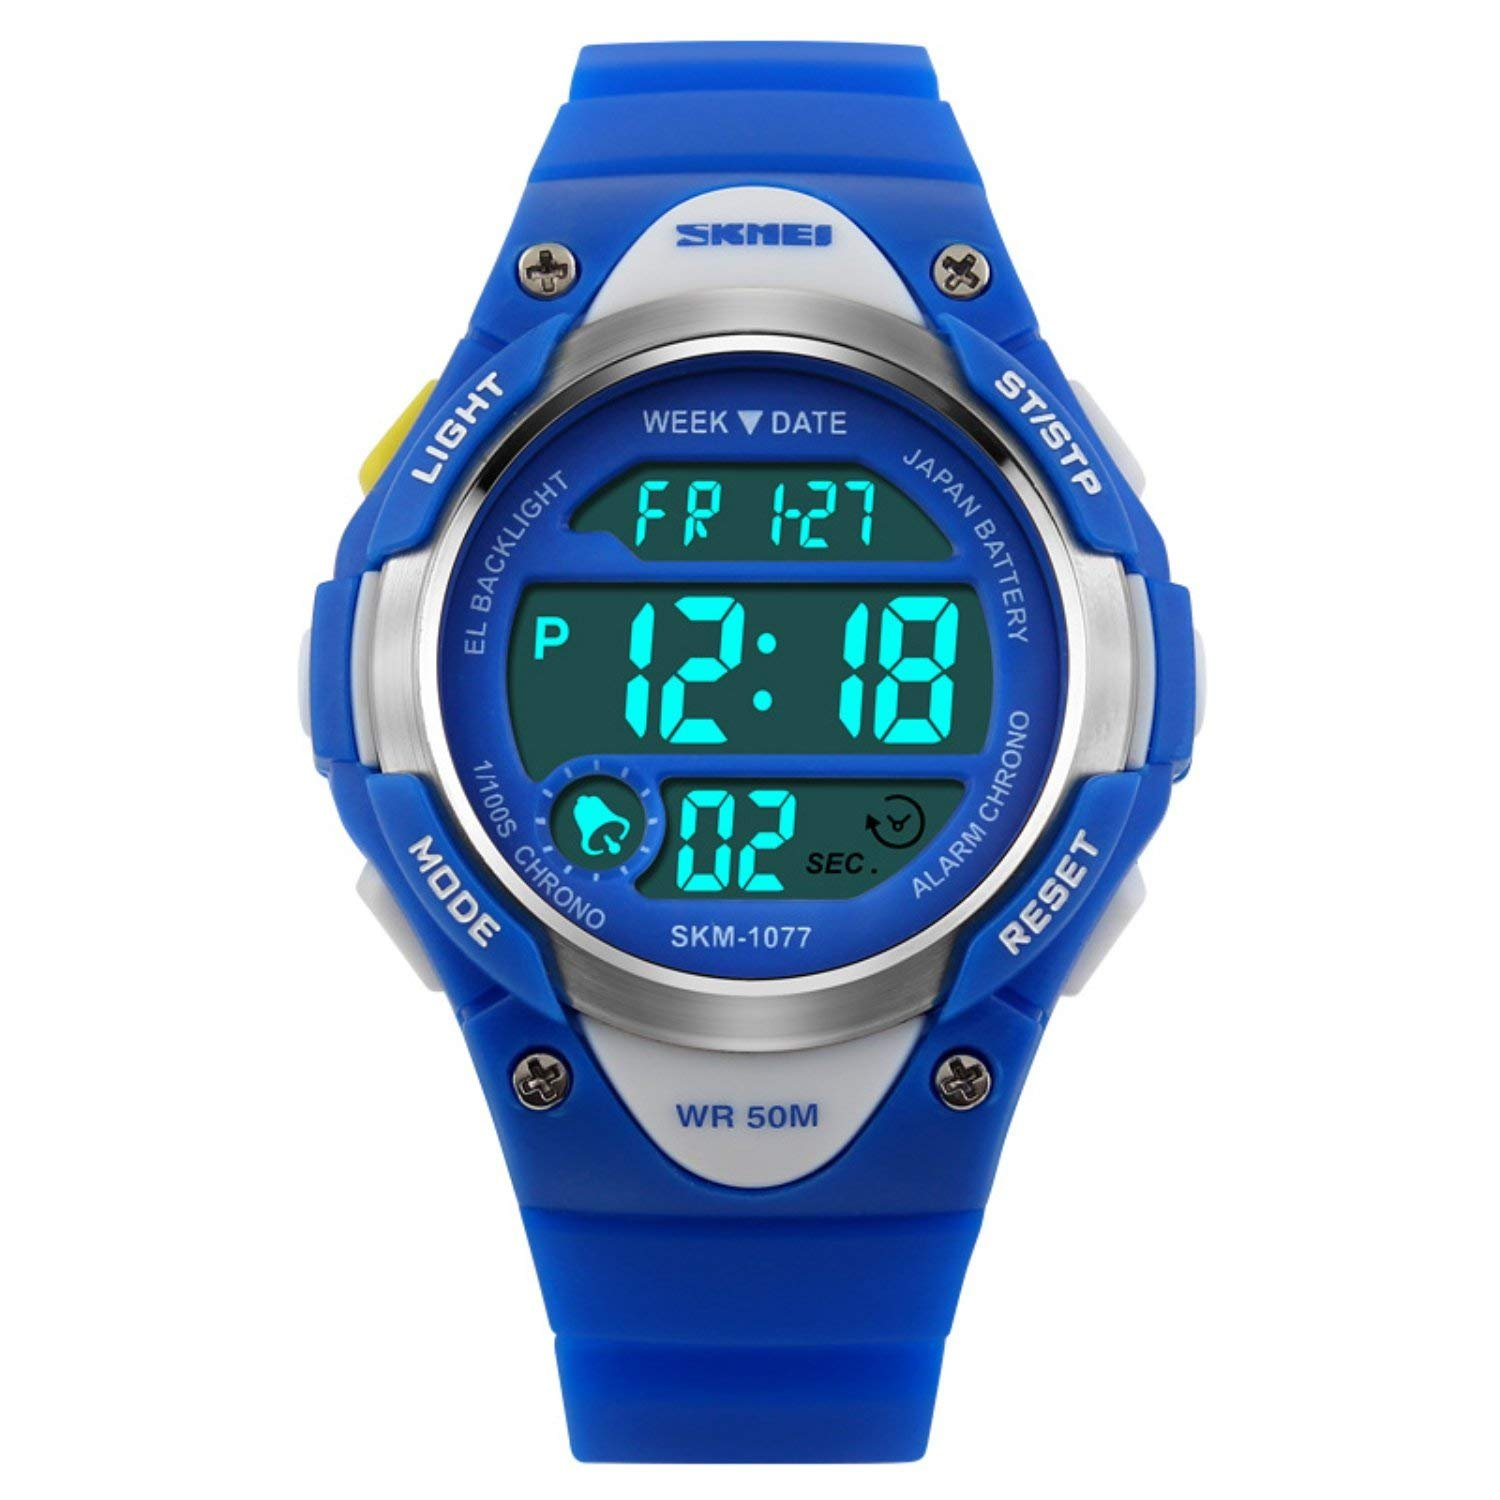 Reloj - MX kingdom - Para - 9641594323017: Amazon.es: Relojes